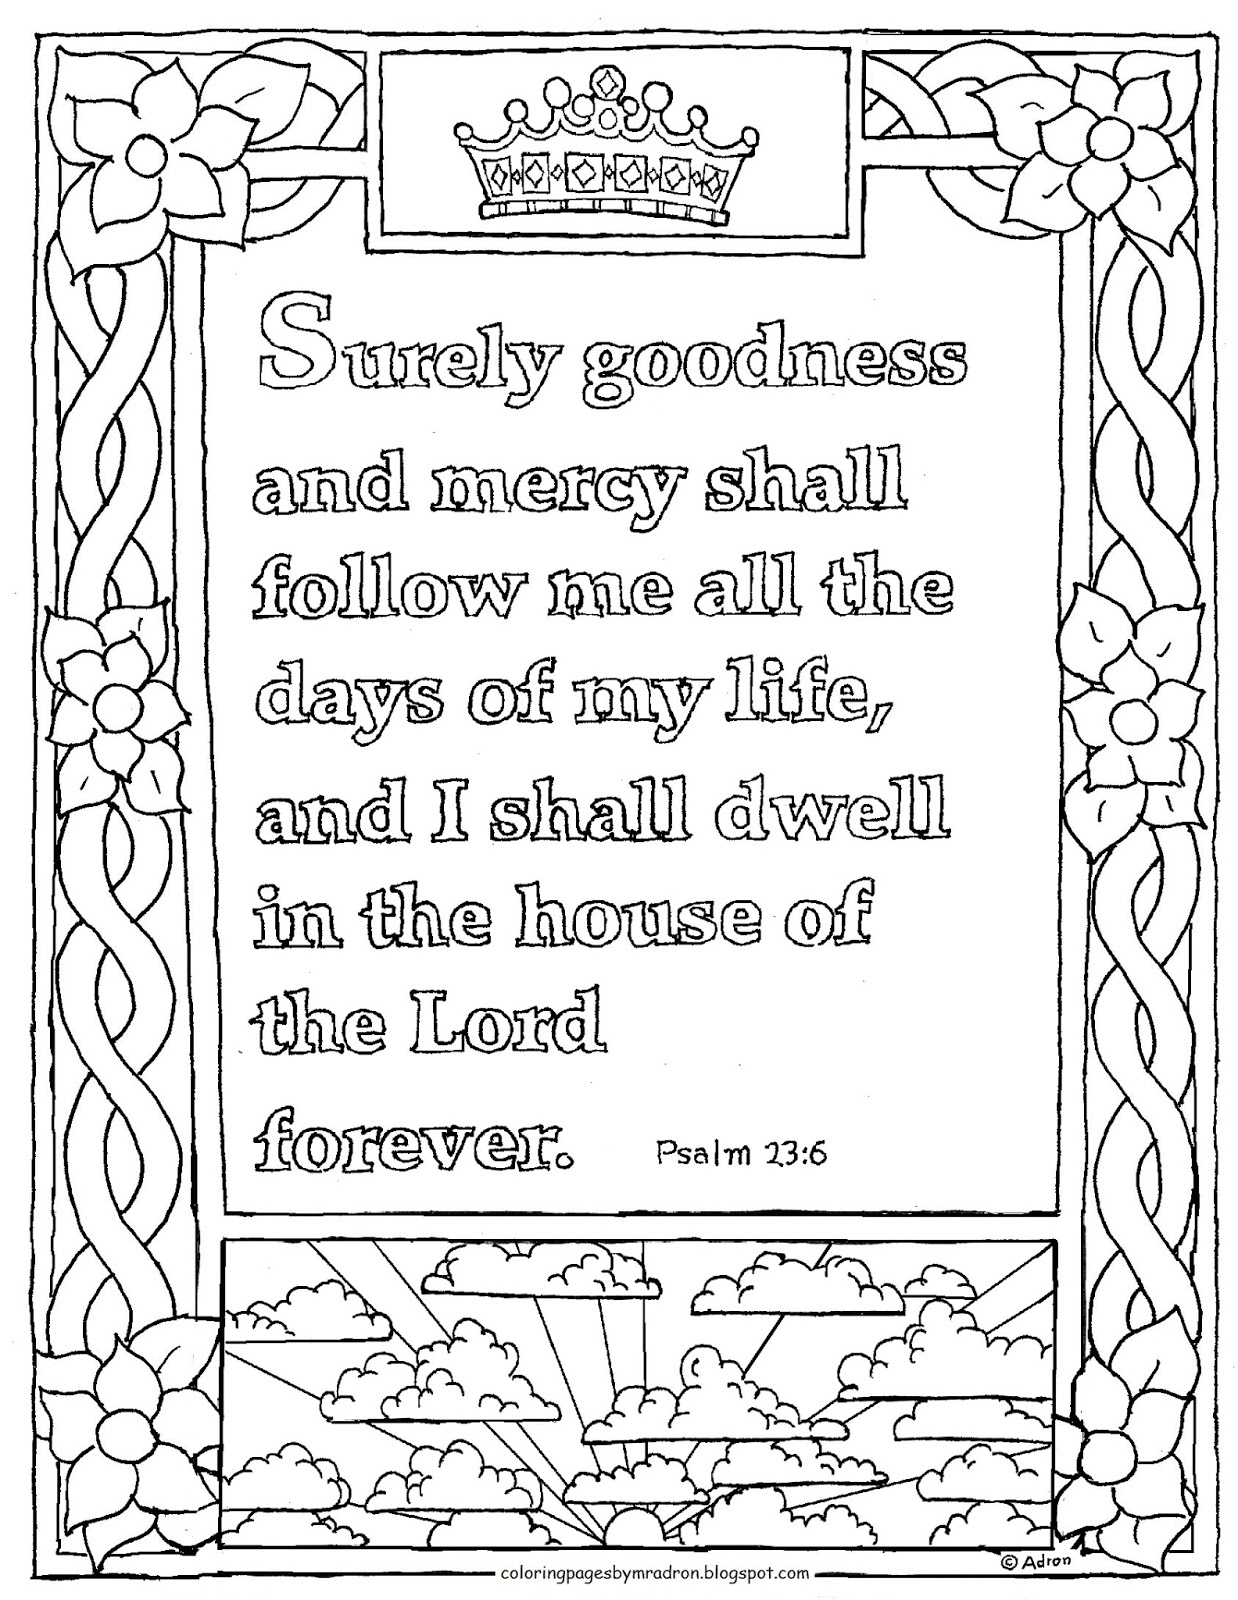 psalm 23 coloring page - printable psalm 236 coloring page